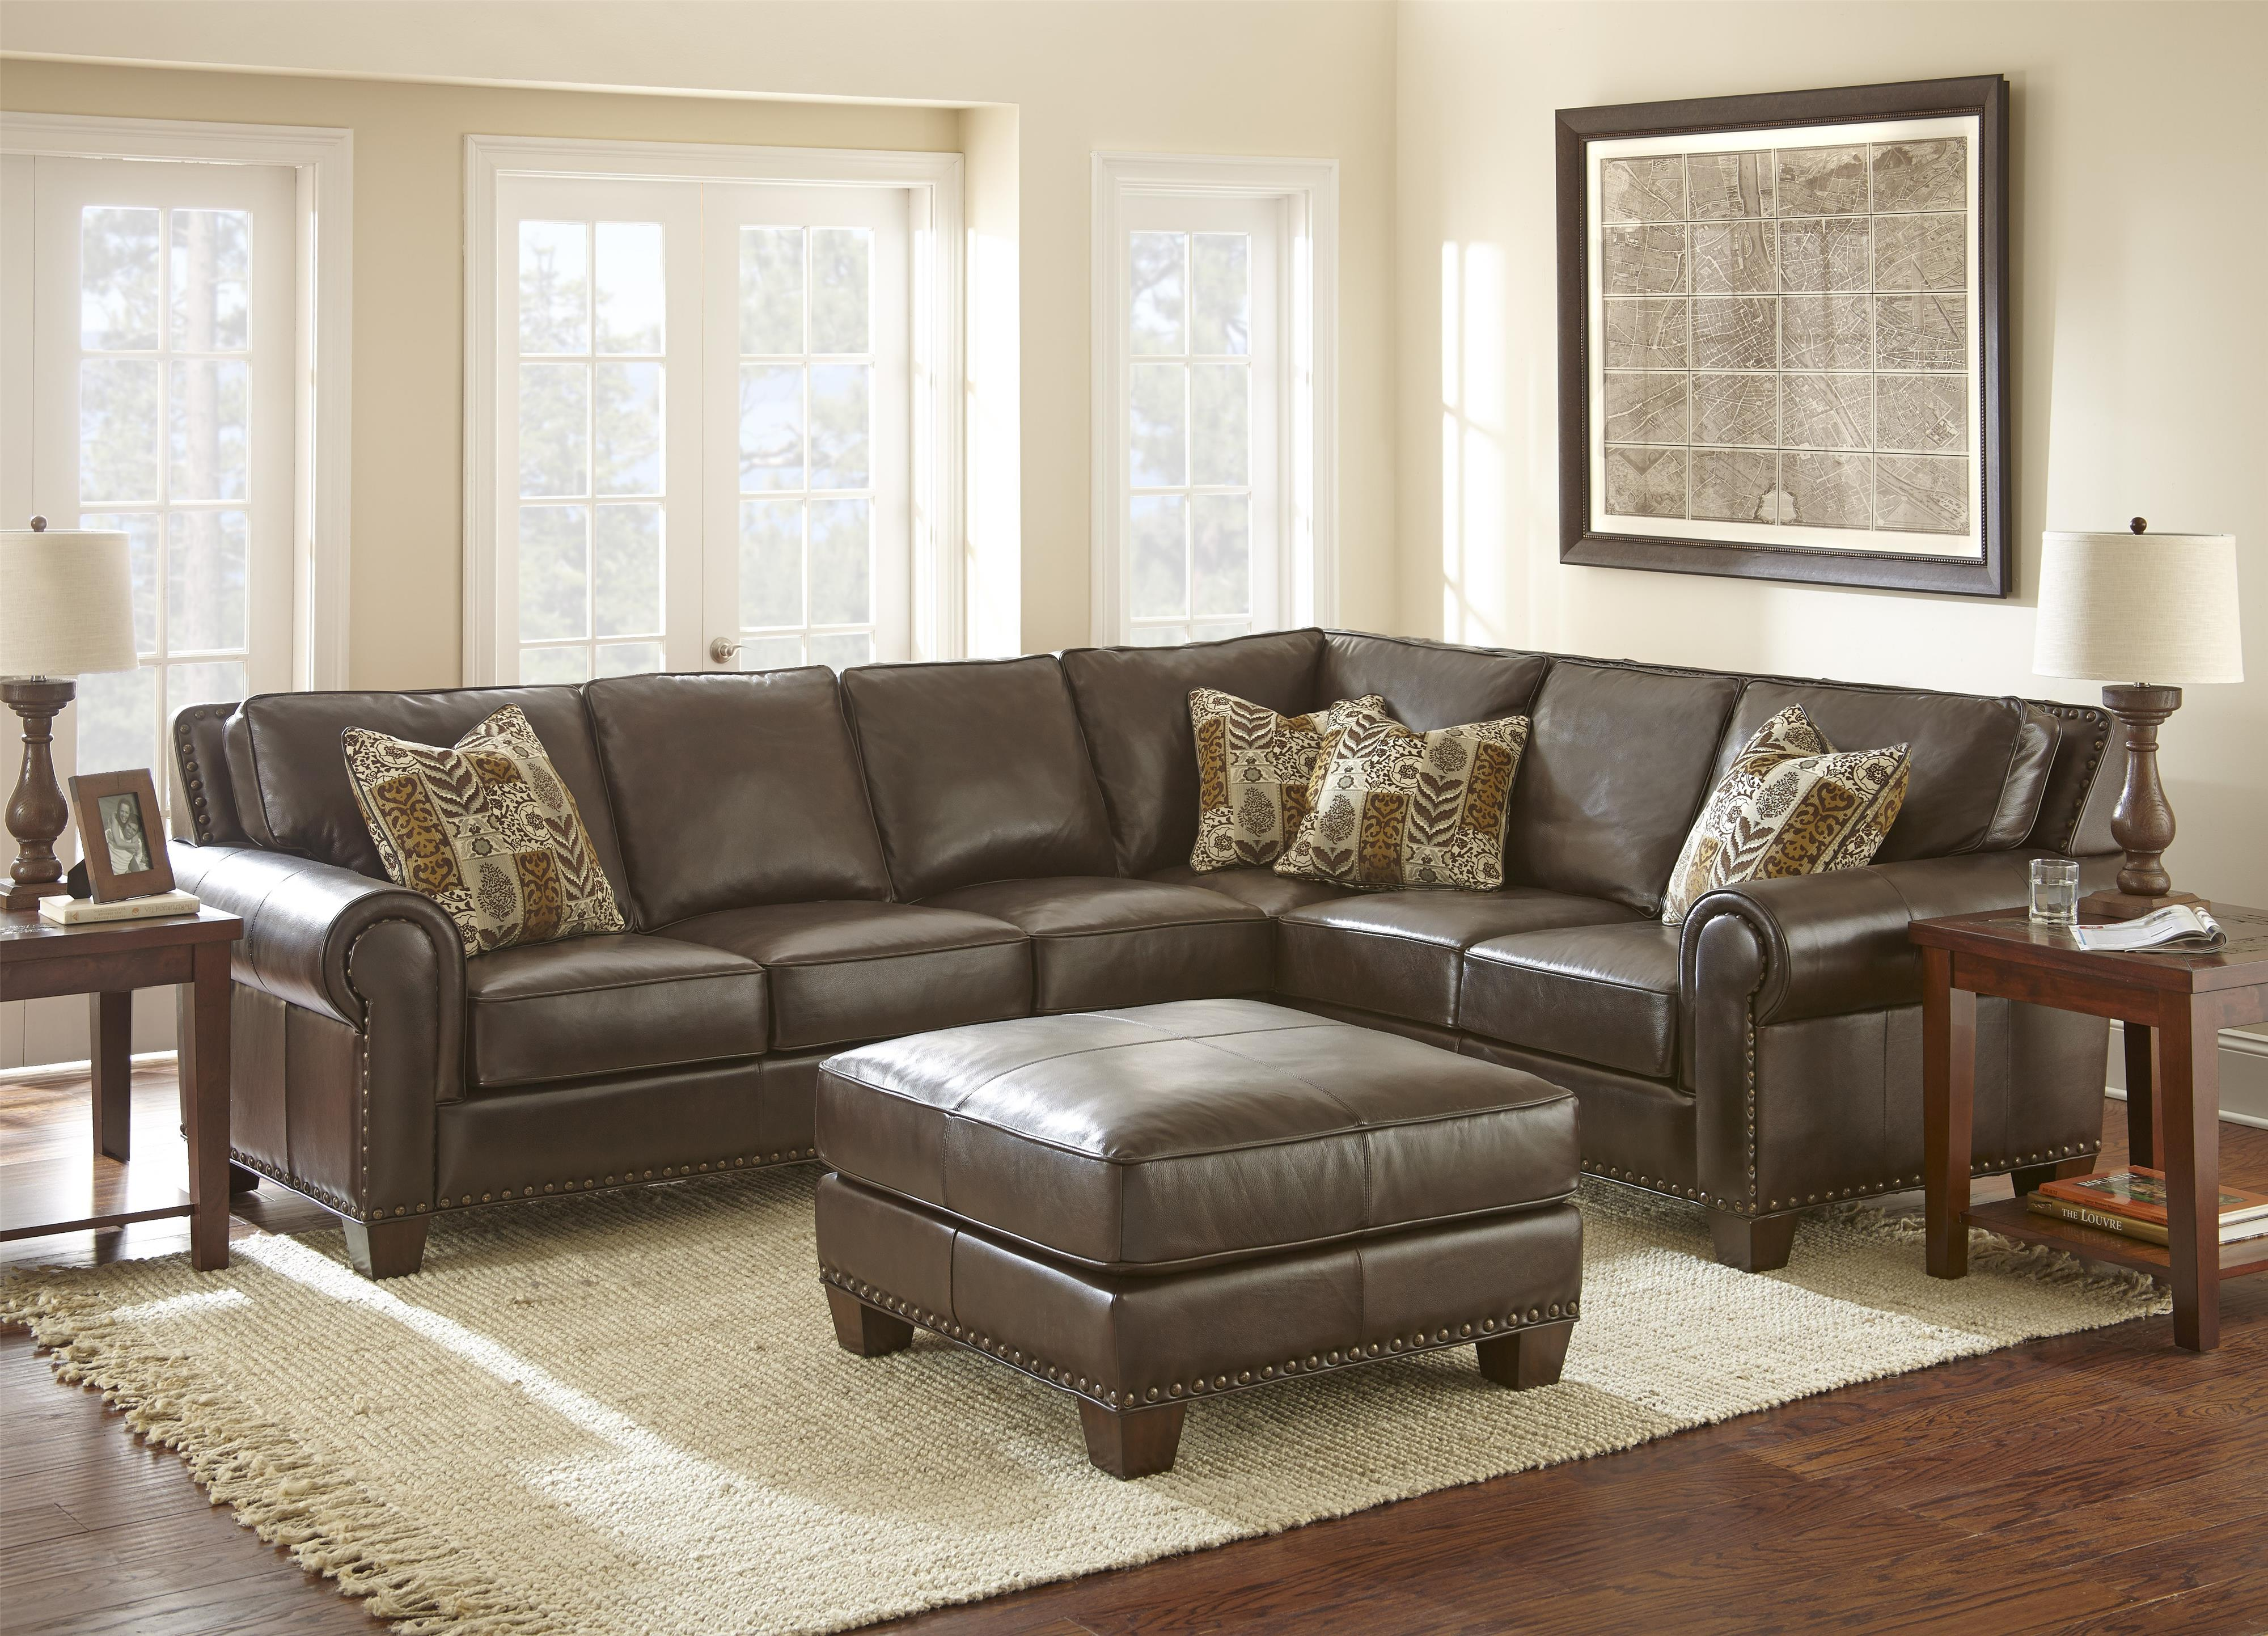 grey sofa with silver nailheads cama plegable sectional kerwin 6 piece reclining